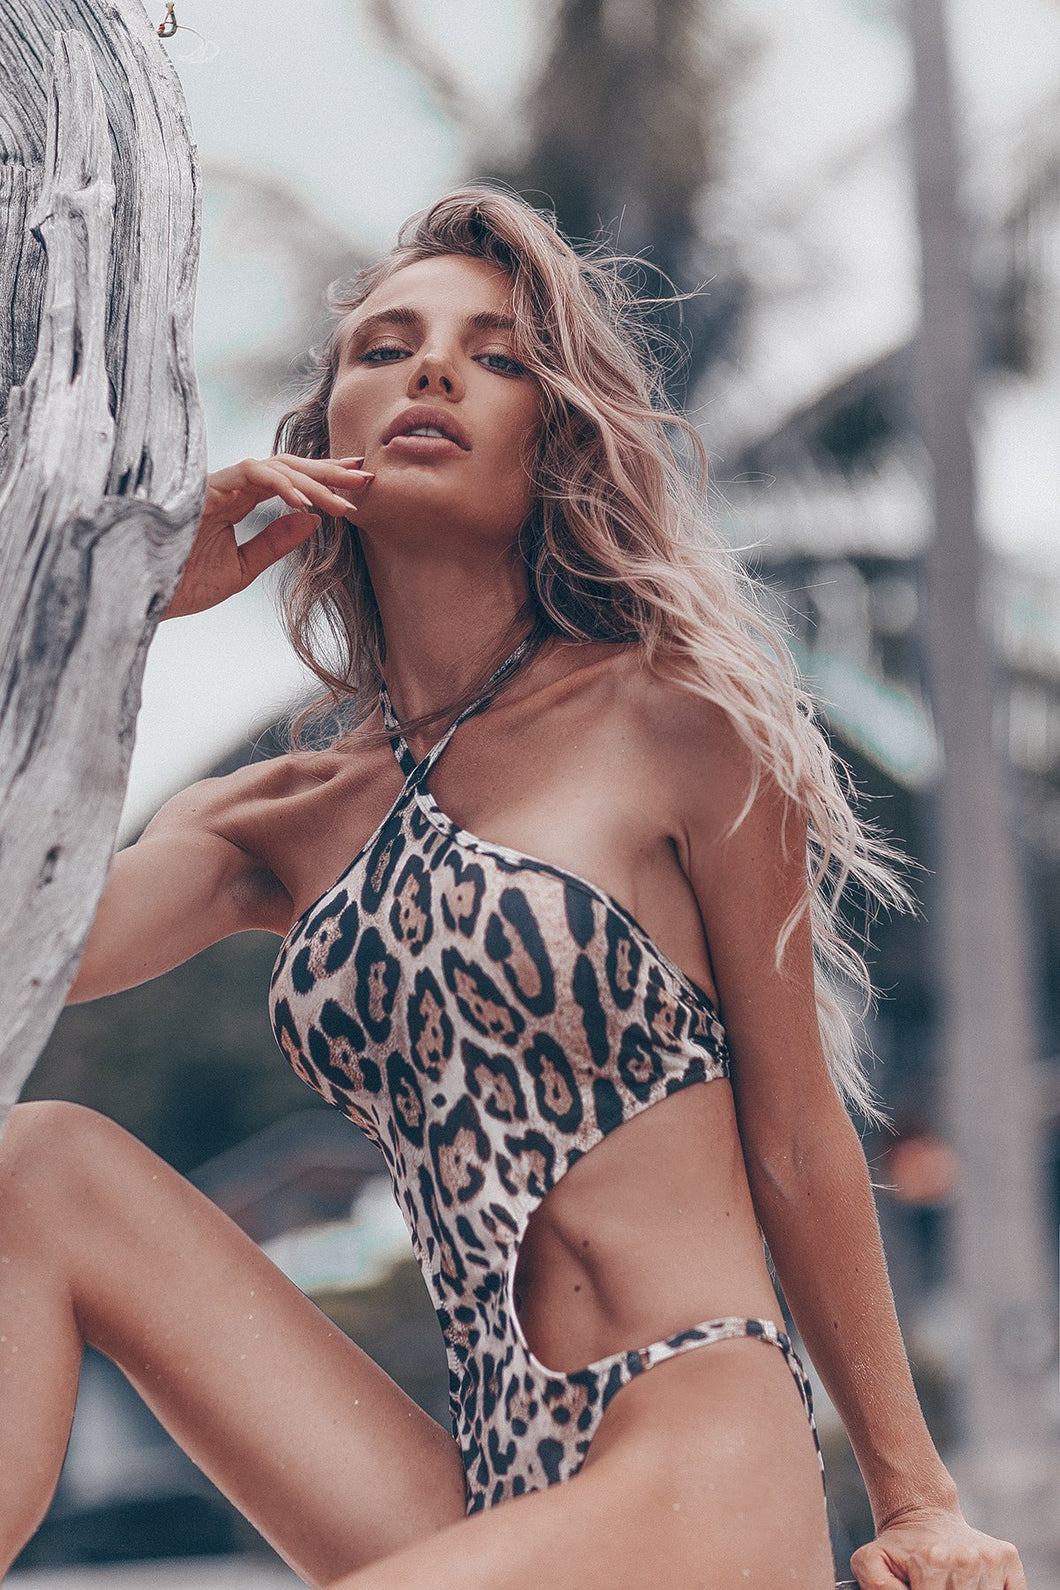 Cheetah High Cut Out - www.kaandabeachlife.se